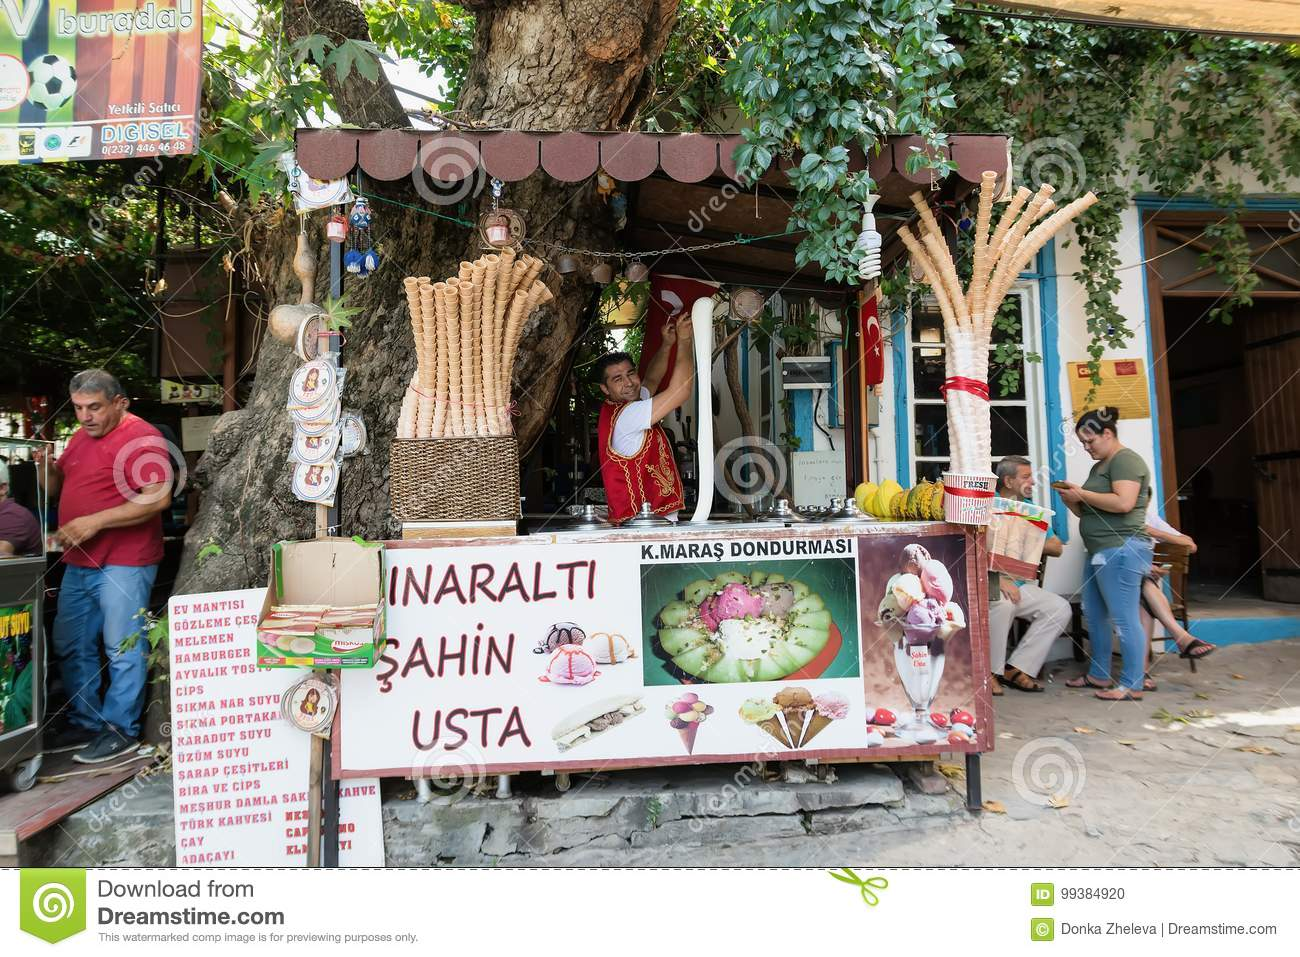 SIRINCE, TURKEY - AUGUST 17, 2017: A man in traditional Turkish costume sells ice cream on the street